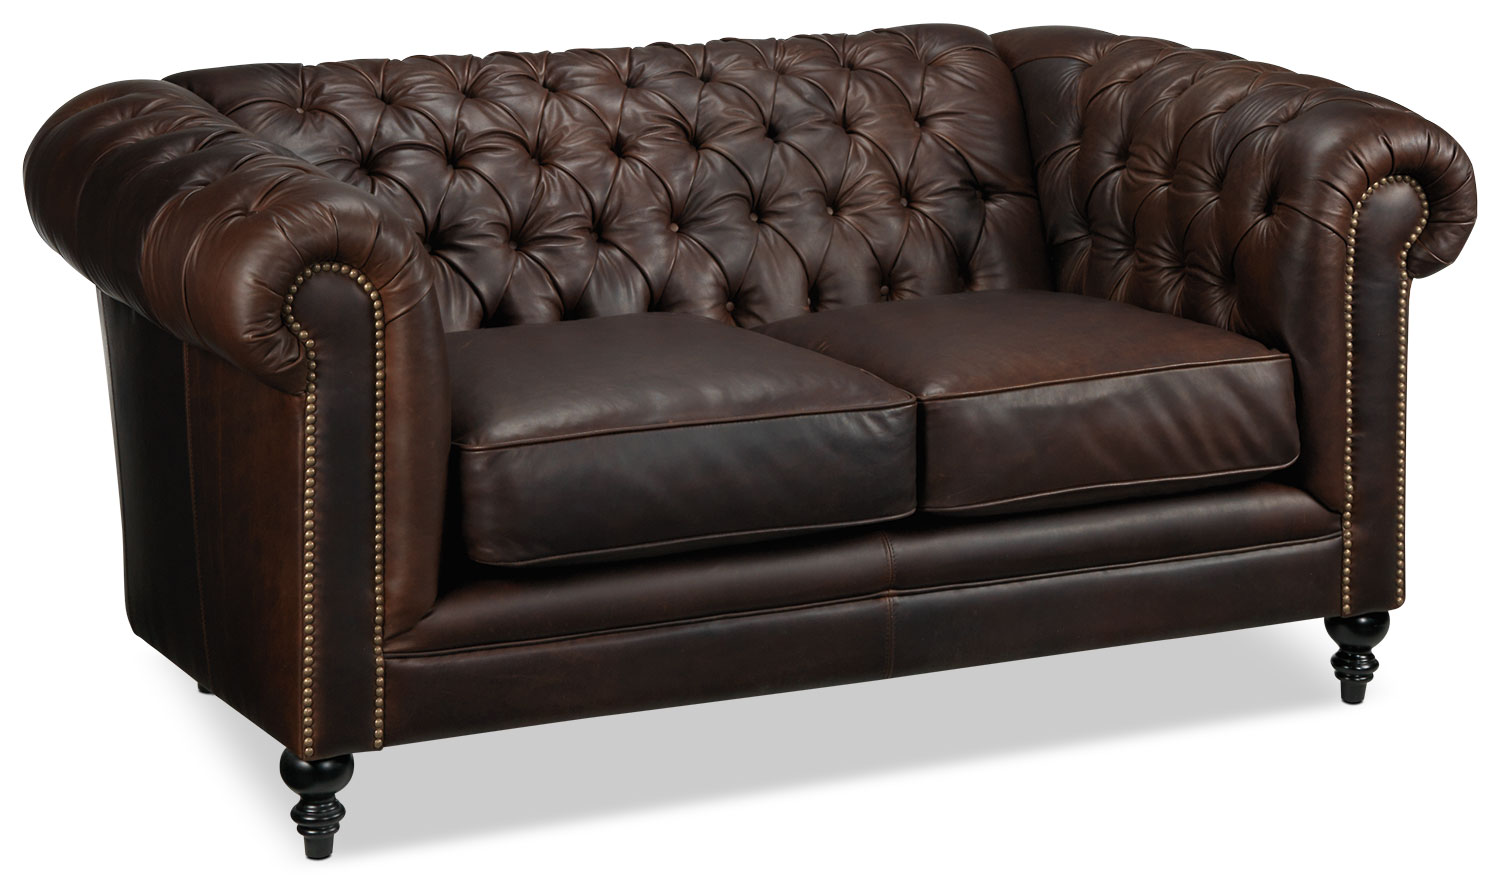 Living Room Furniture - Charleston Loveseat - Brown